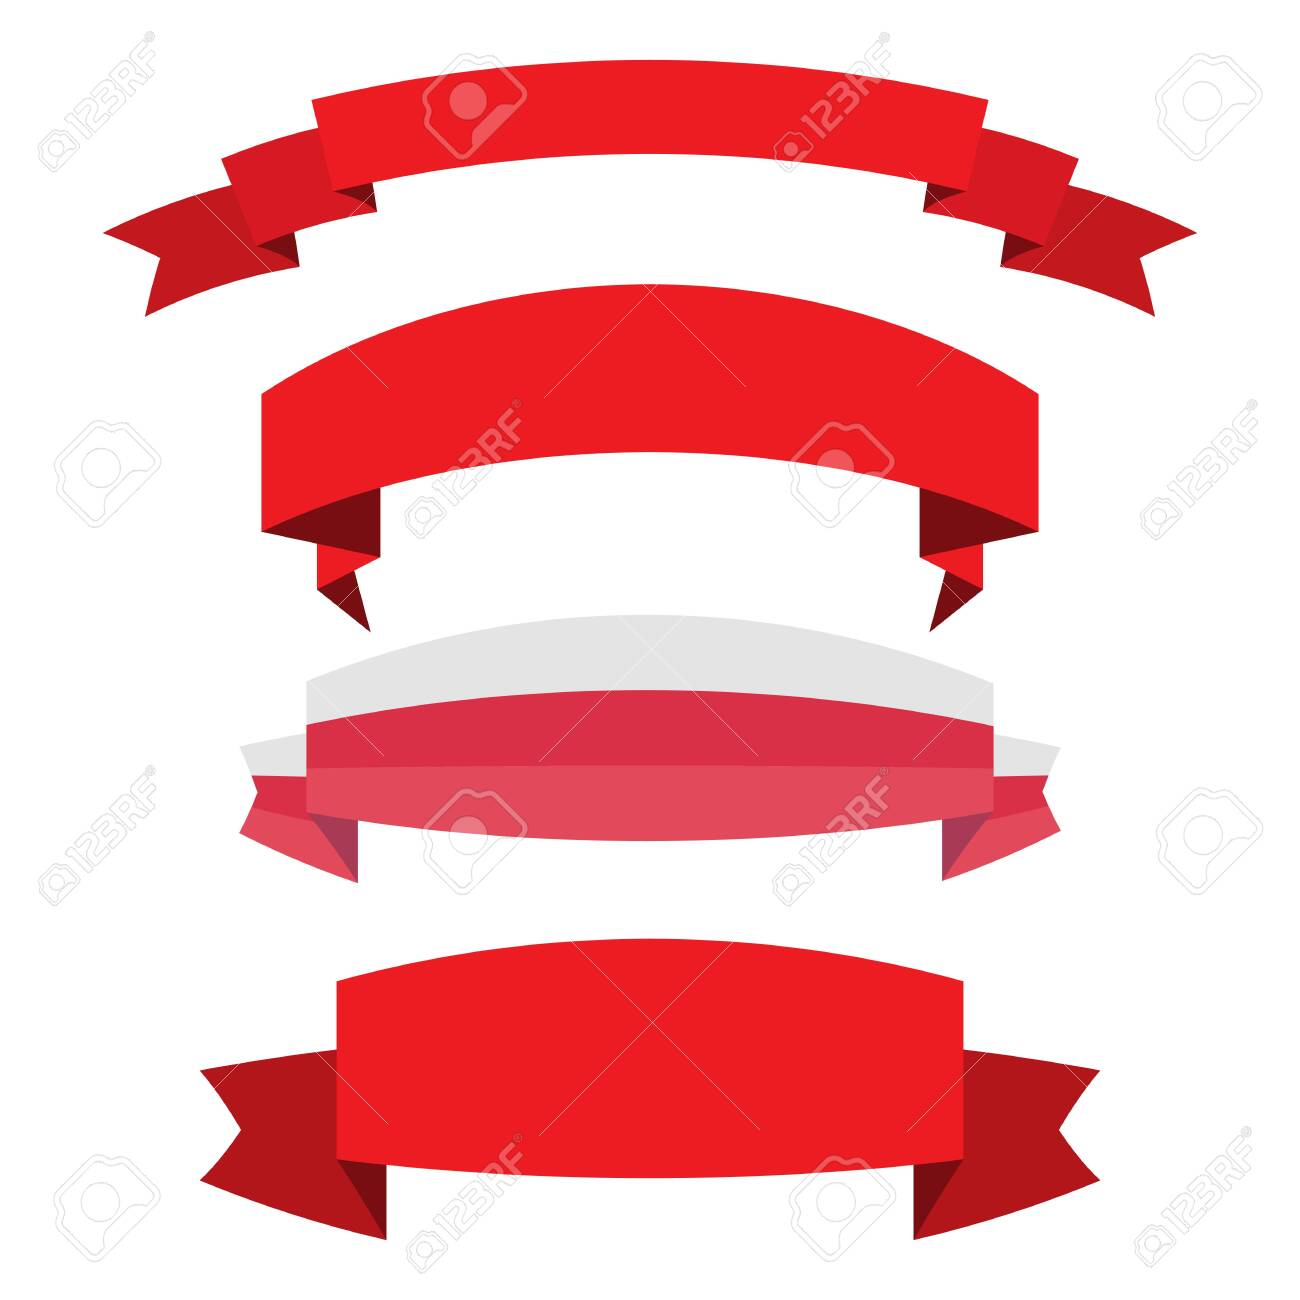 set of red ribbon banner icon,Vector illustration. Place for your text. Ribbons for business and design. Design elements - 135599138